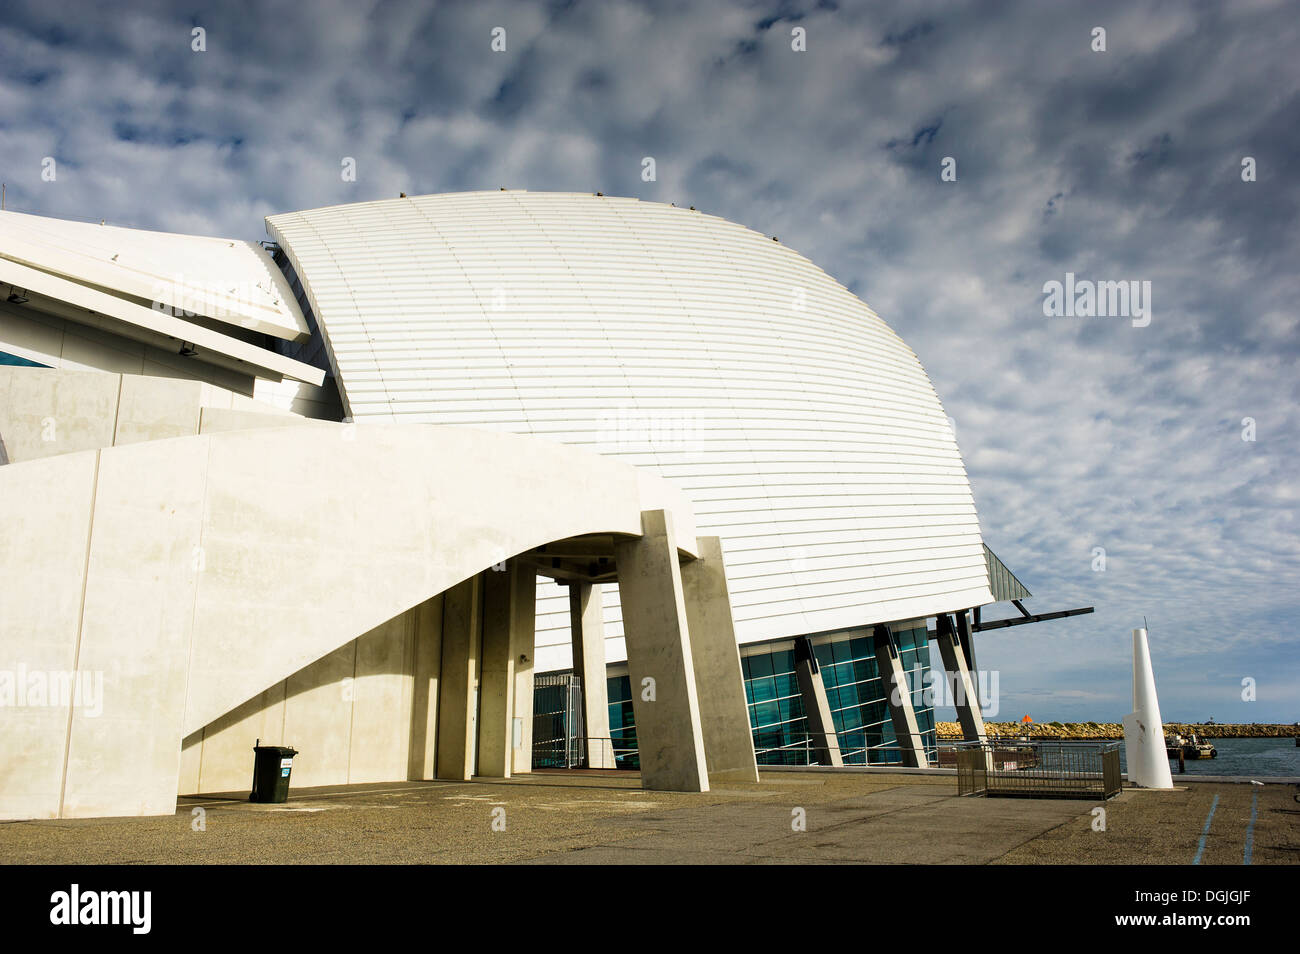 The Western Australian Maritime Museum in Fremantle. - Stock Image